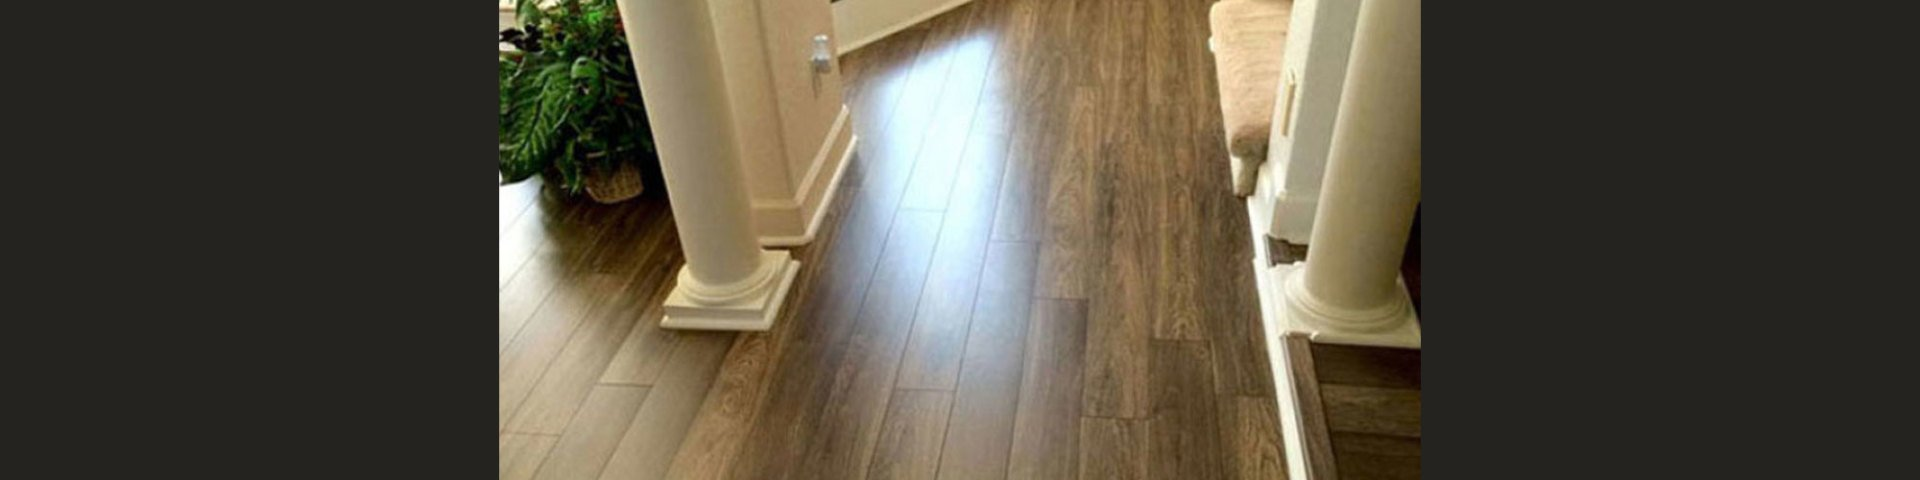 Majestic flooring inc in home installations ruskin fl floor services dailygadgetfo Image collections